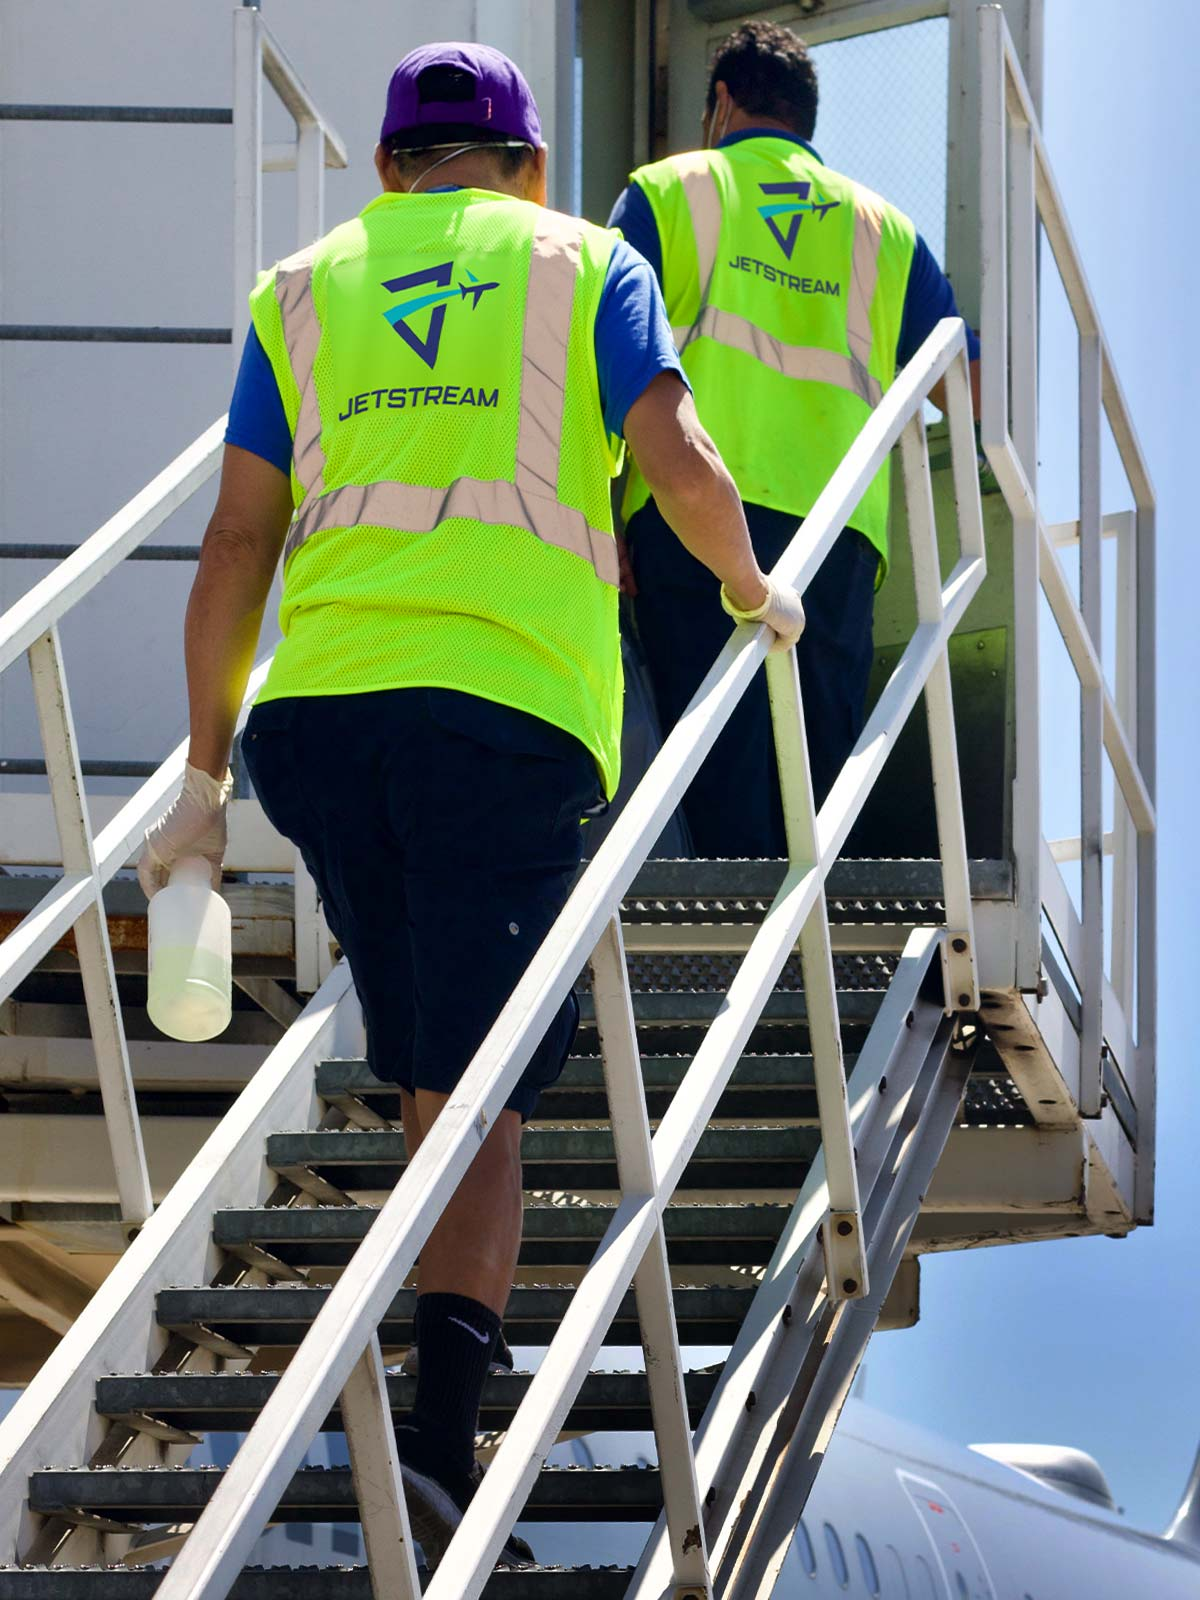 Jetstream aviation, airline, and airplane cleaning and sanitization services